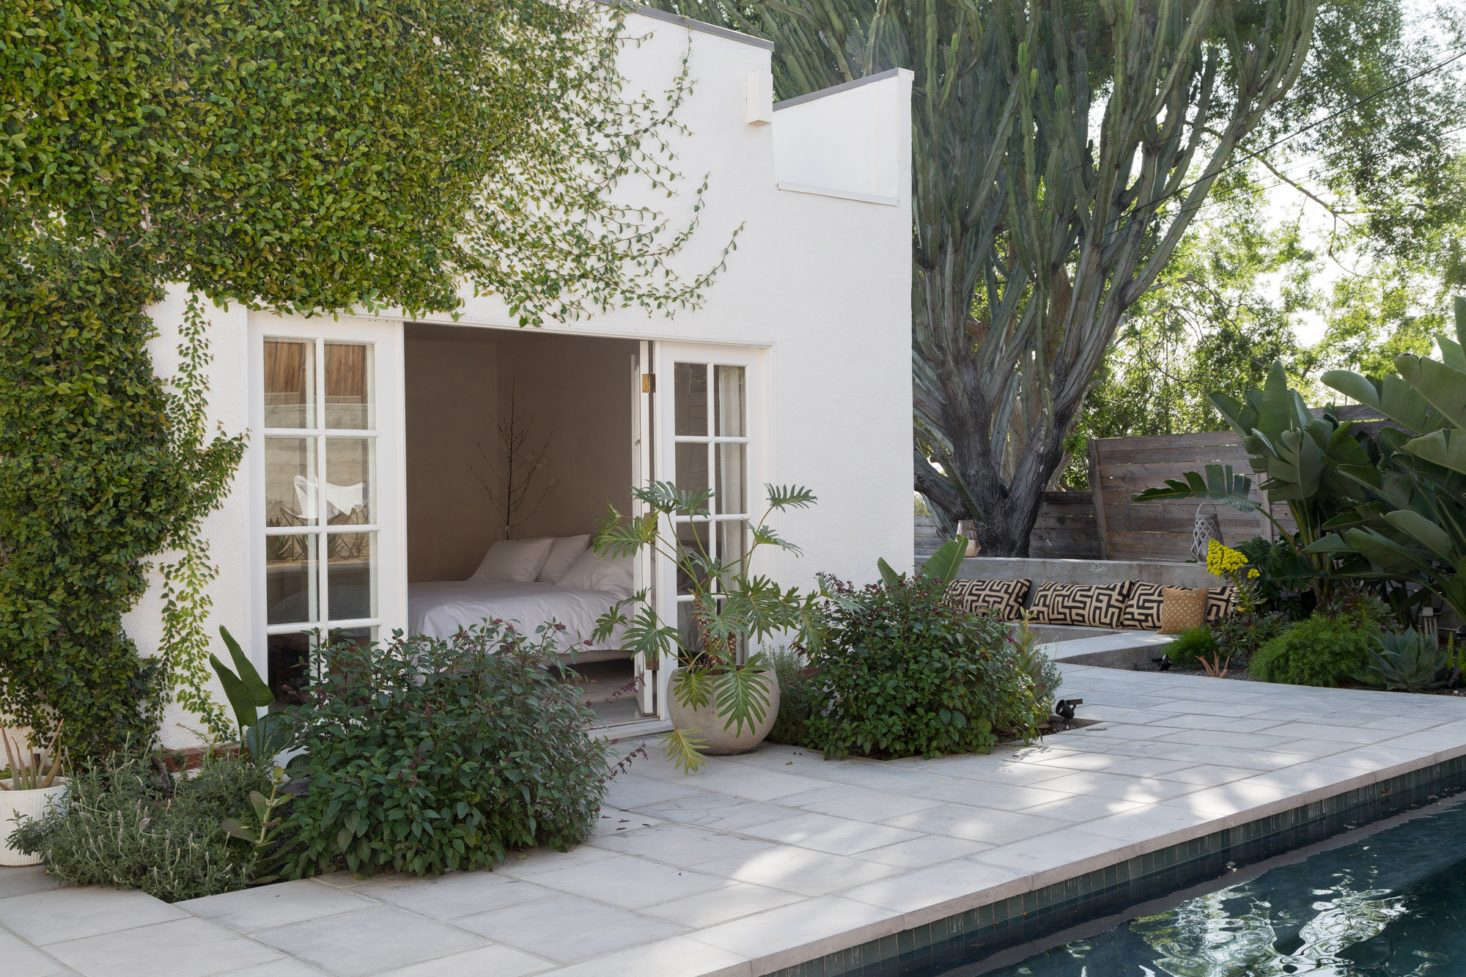 Another entry to the backyard: French doors lead from a first-floor bedroom to the pool.